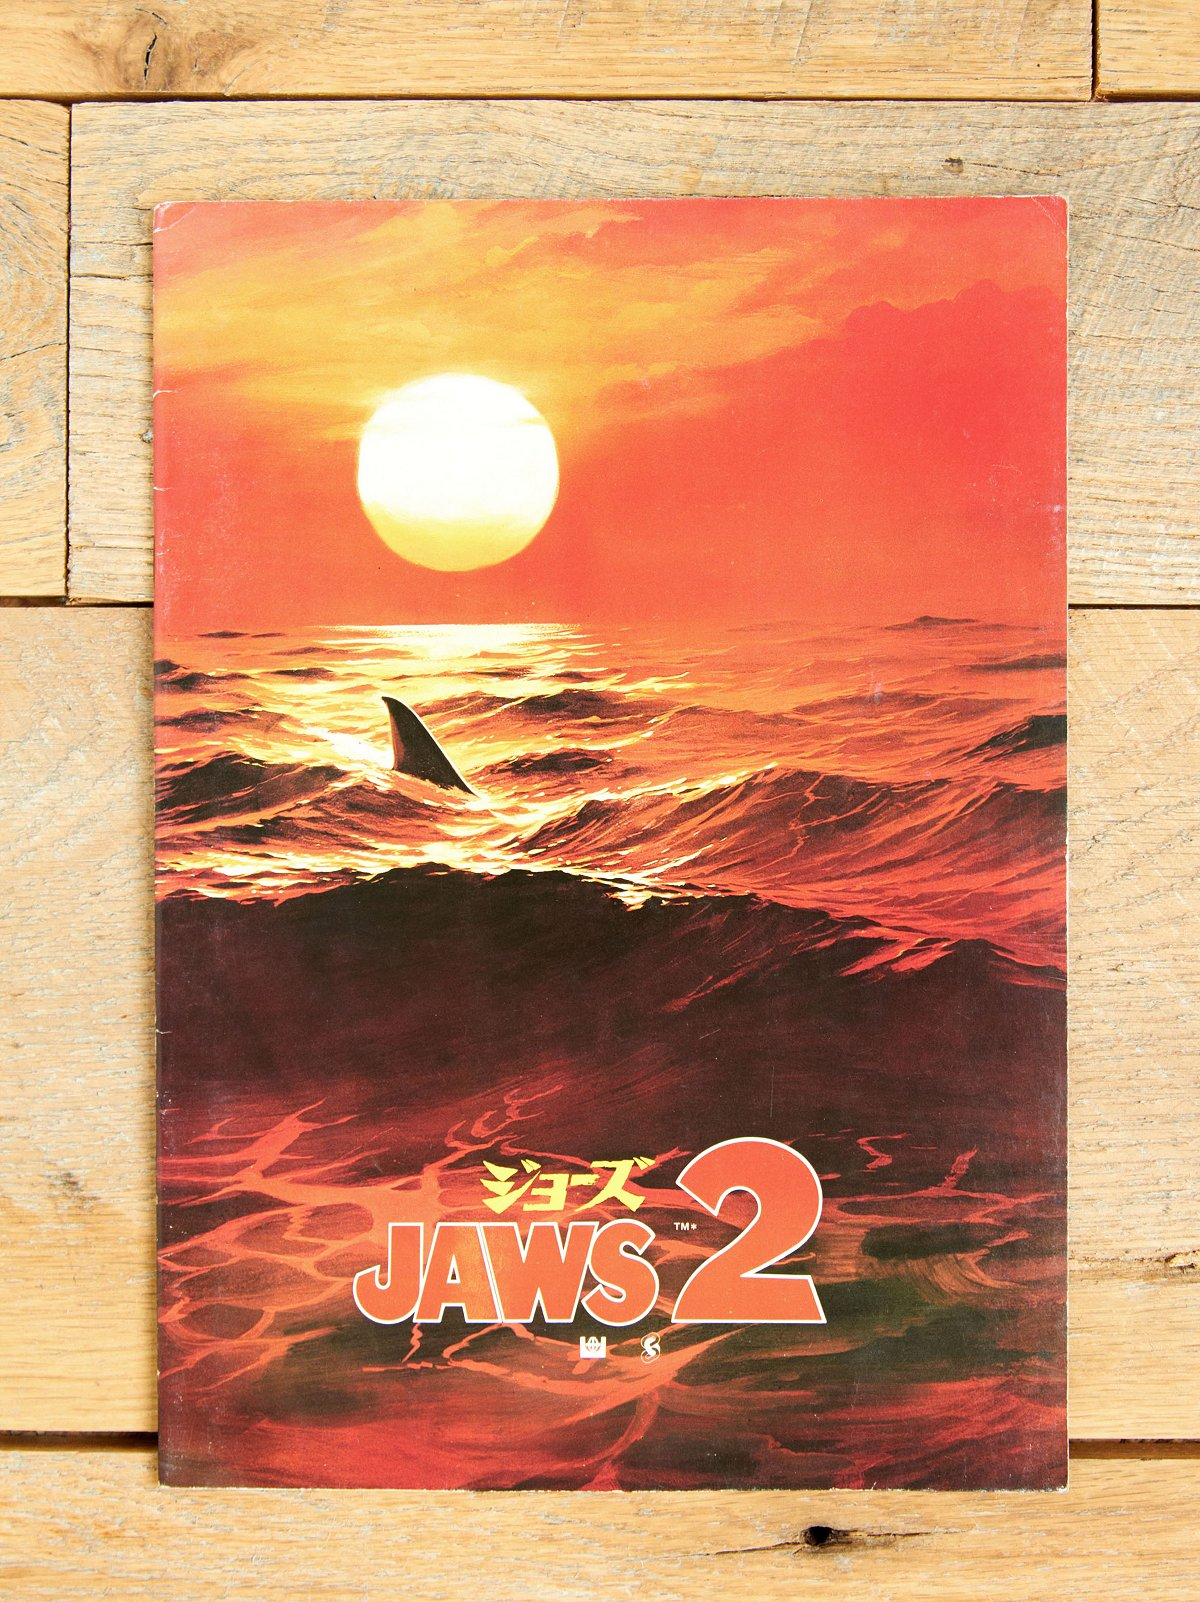 Vintage Jaws 2 Asian Text Movie Soft Cover Book